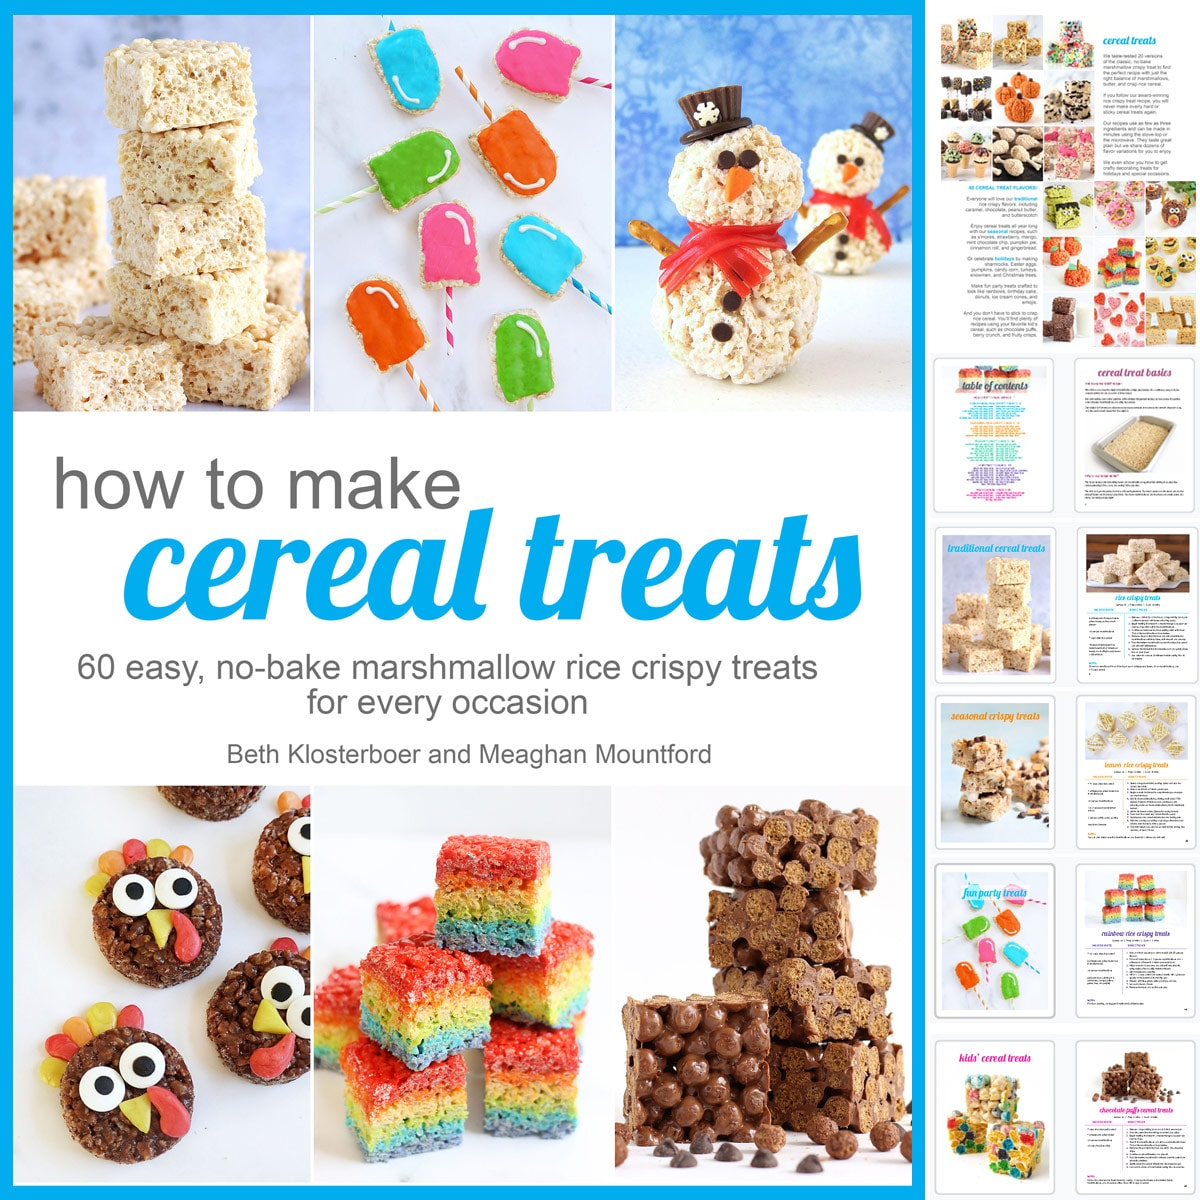 How To Make Cereal Treats Cookbook featuring 60 rice crispy treat recipes